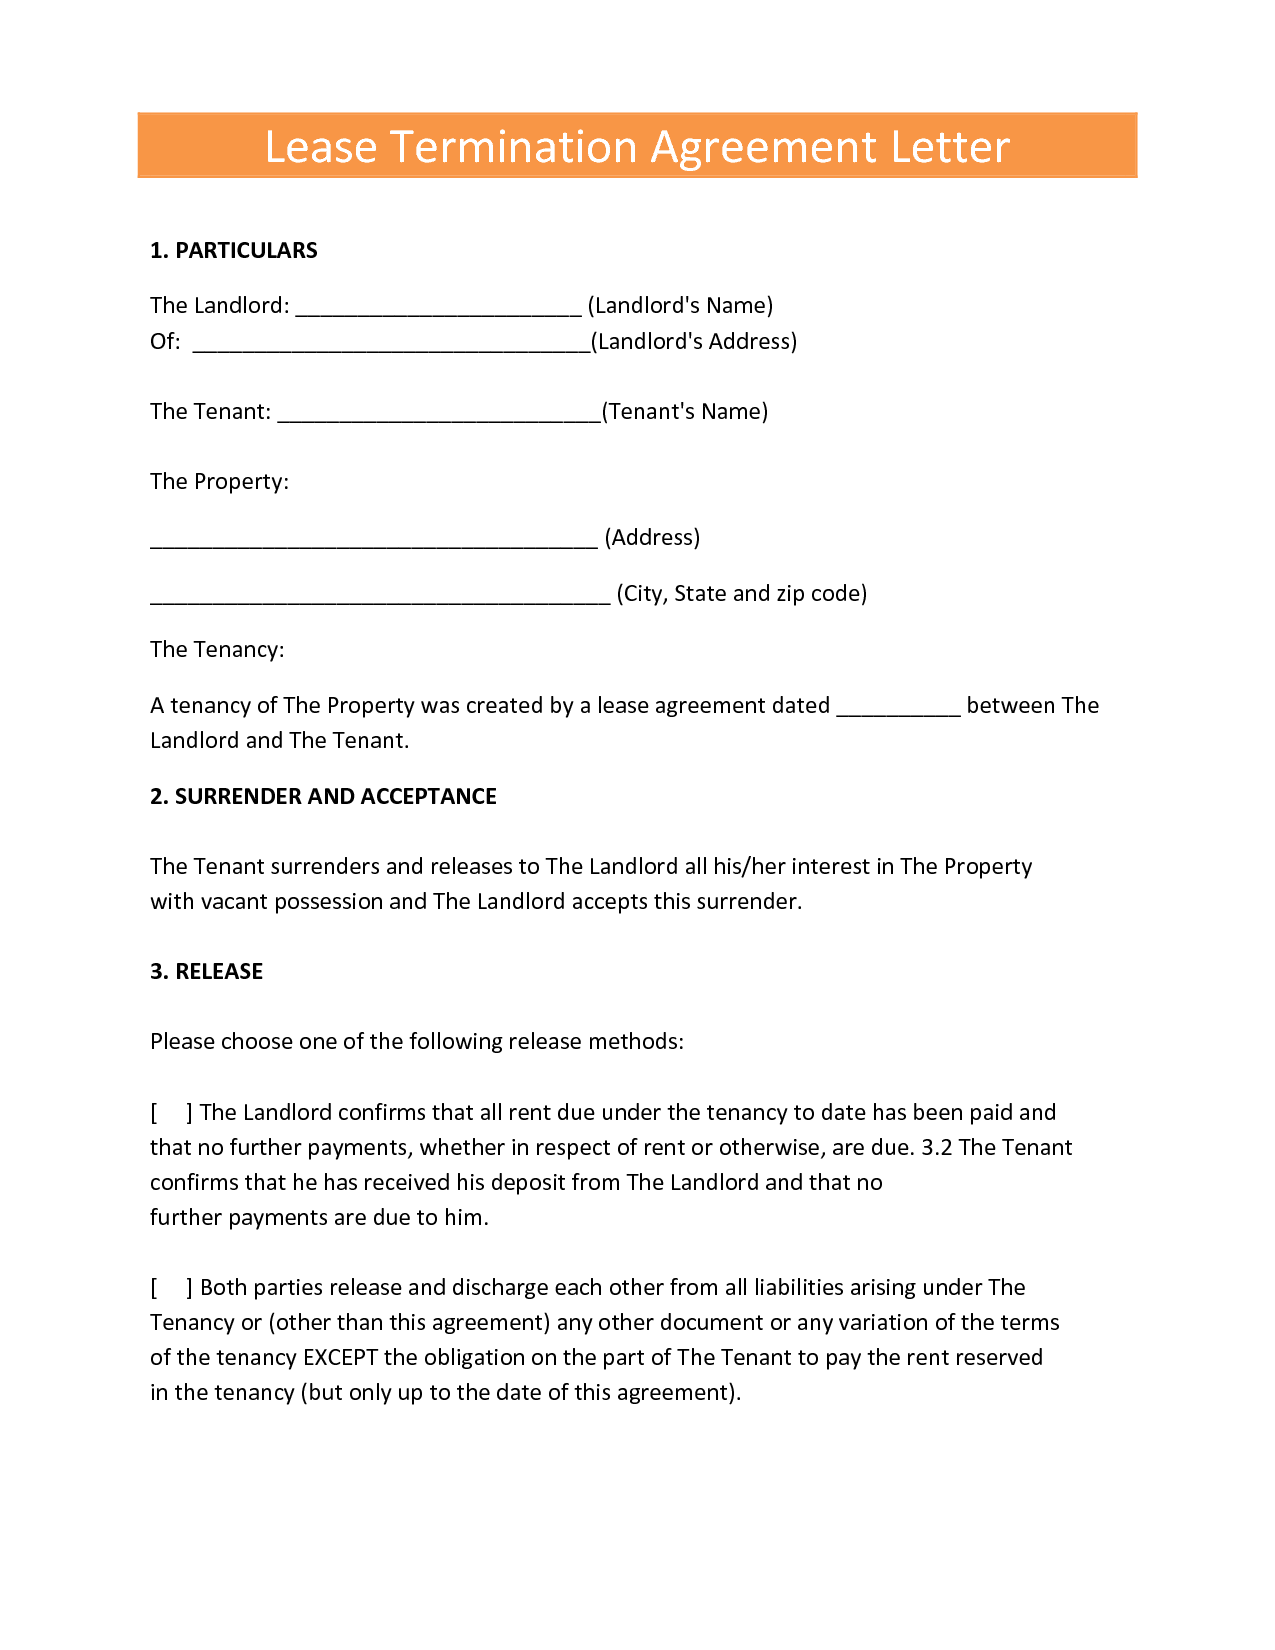 Termination Agreement Letter Template resume objective sentence ...